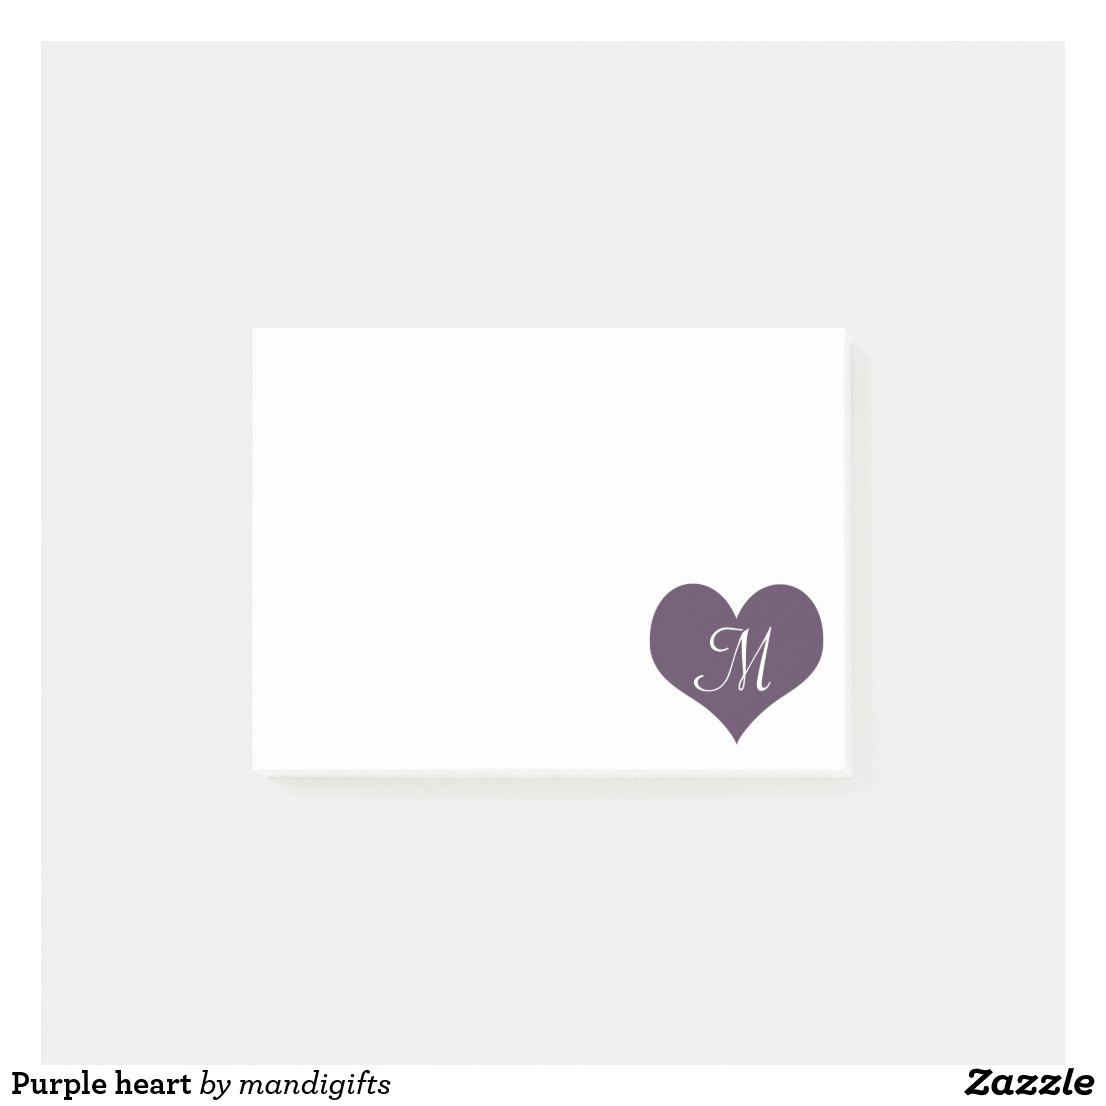 Purple heart post-it notes